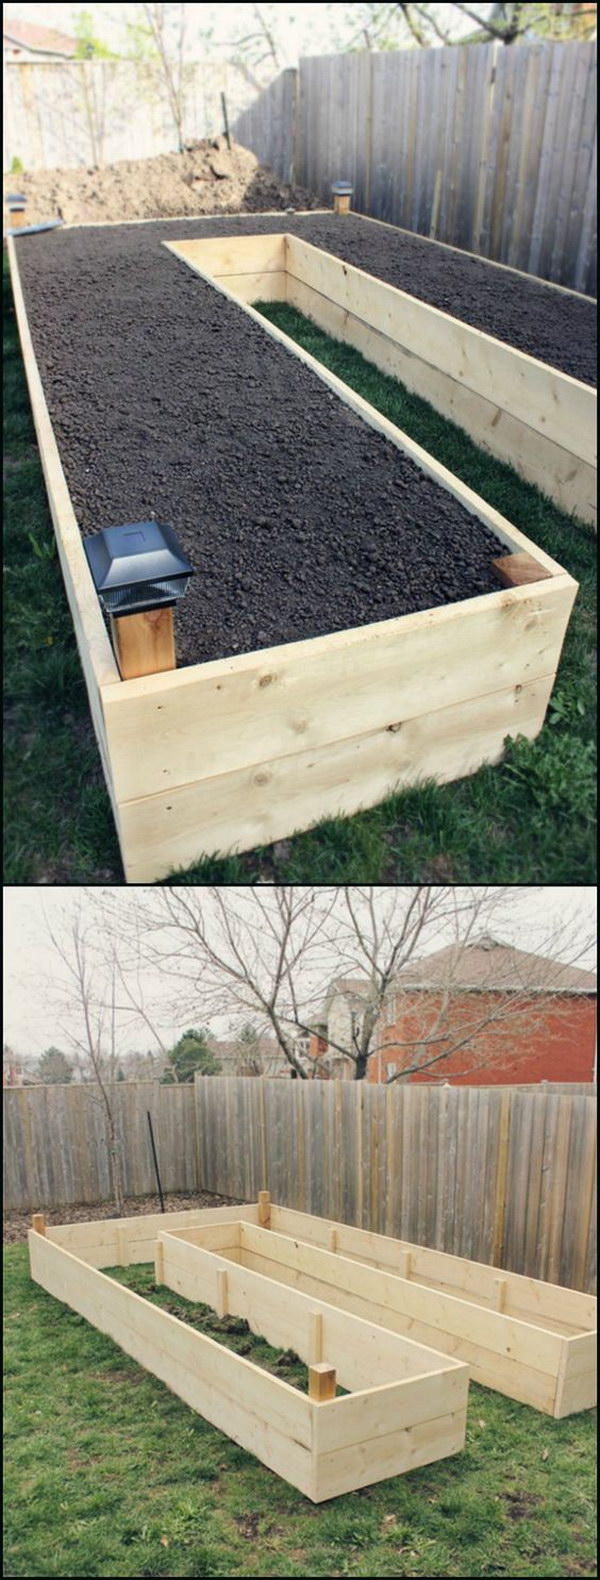 How to Make a U-Shaped Raised Garden Bed.